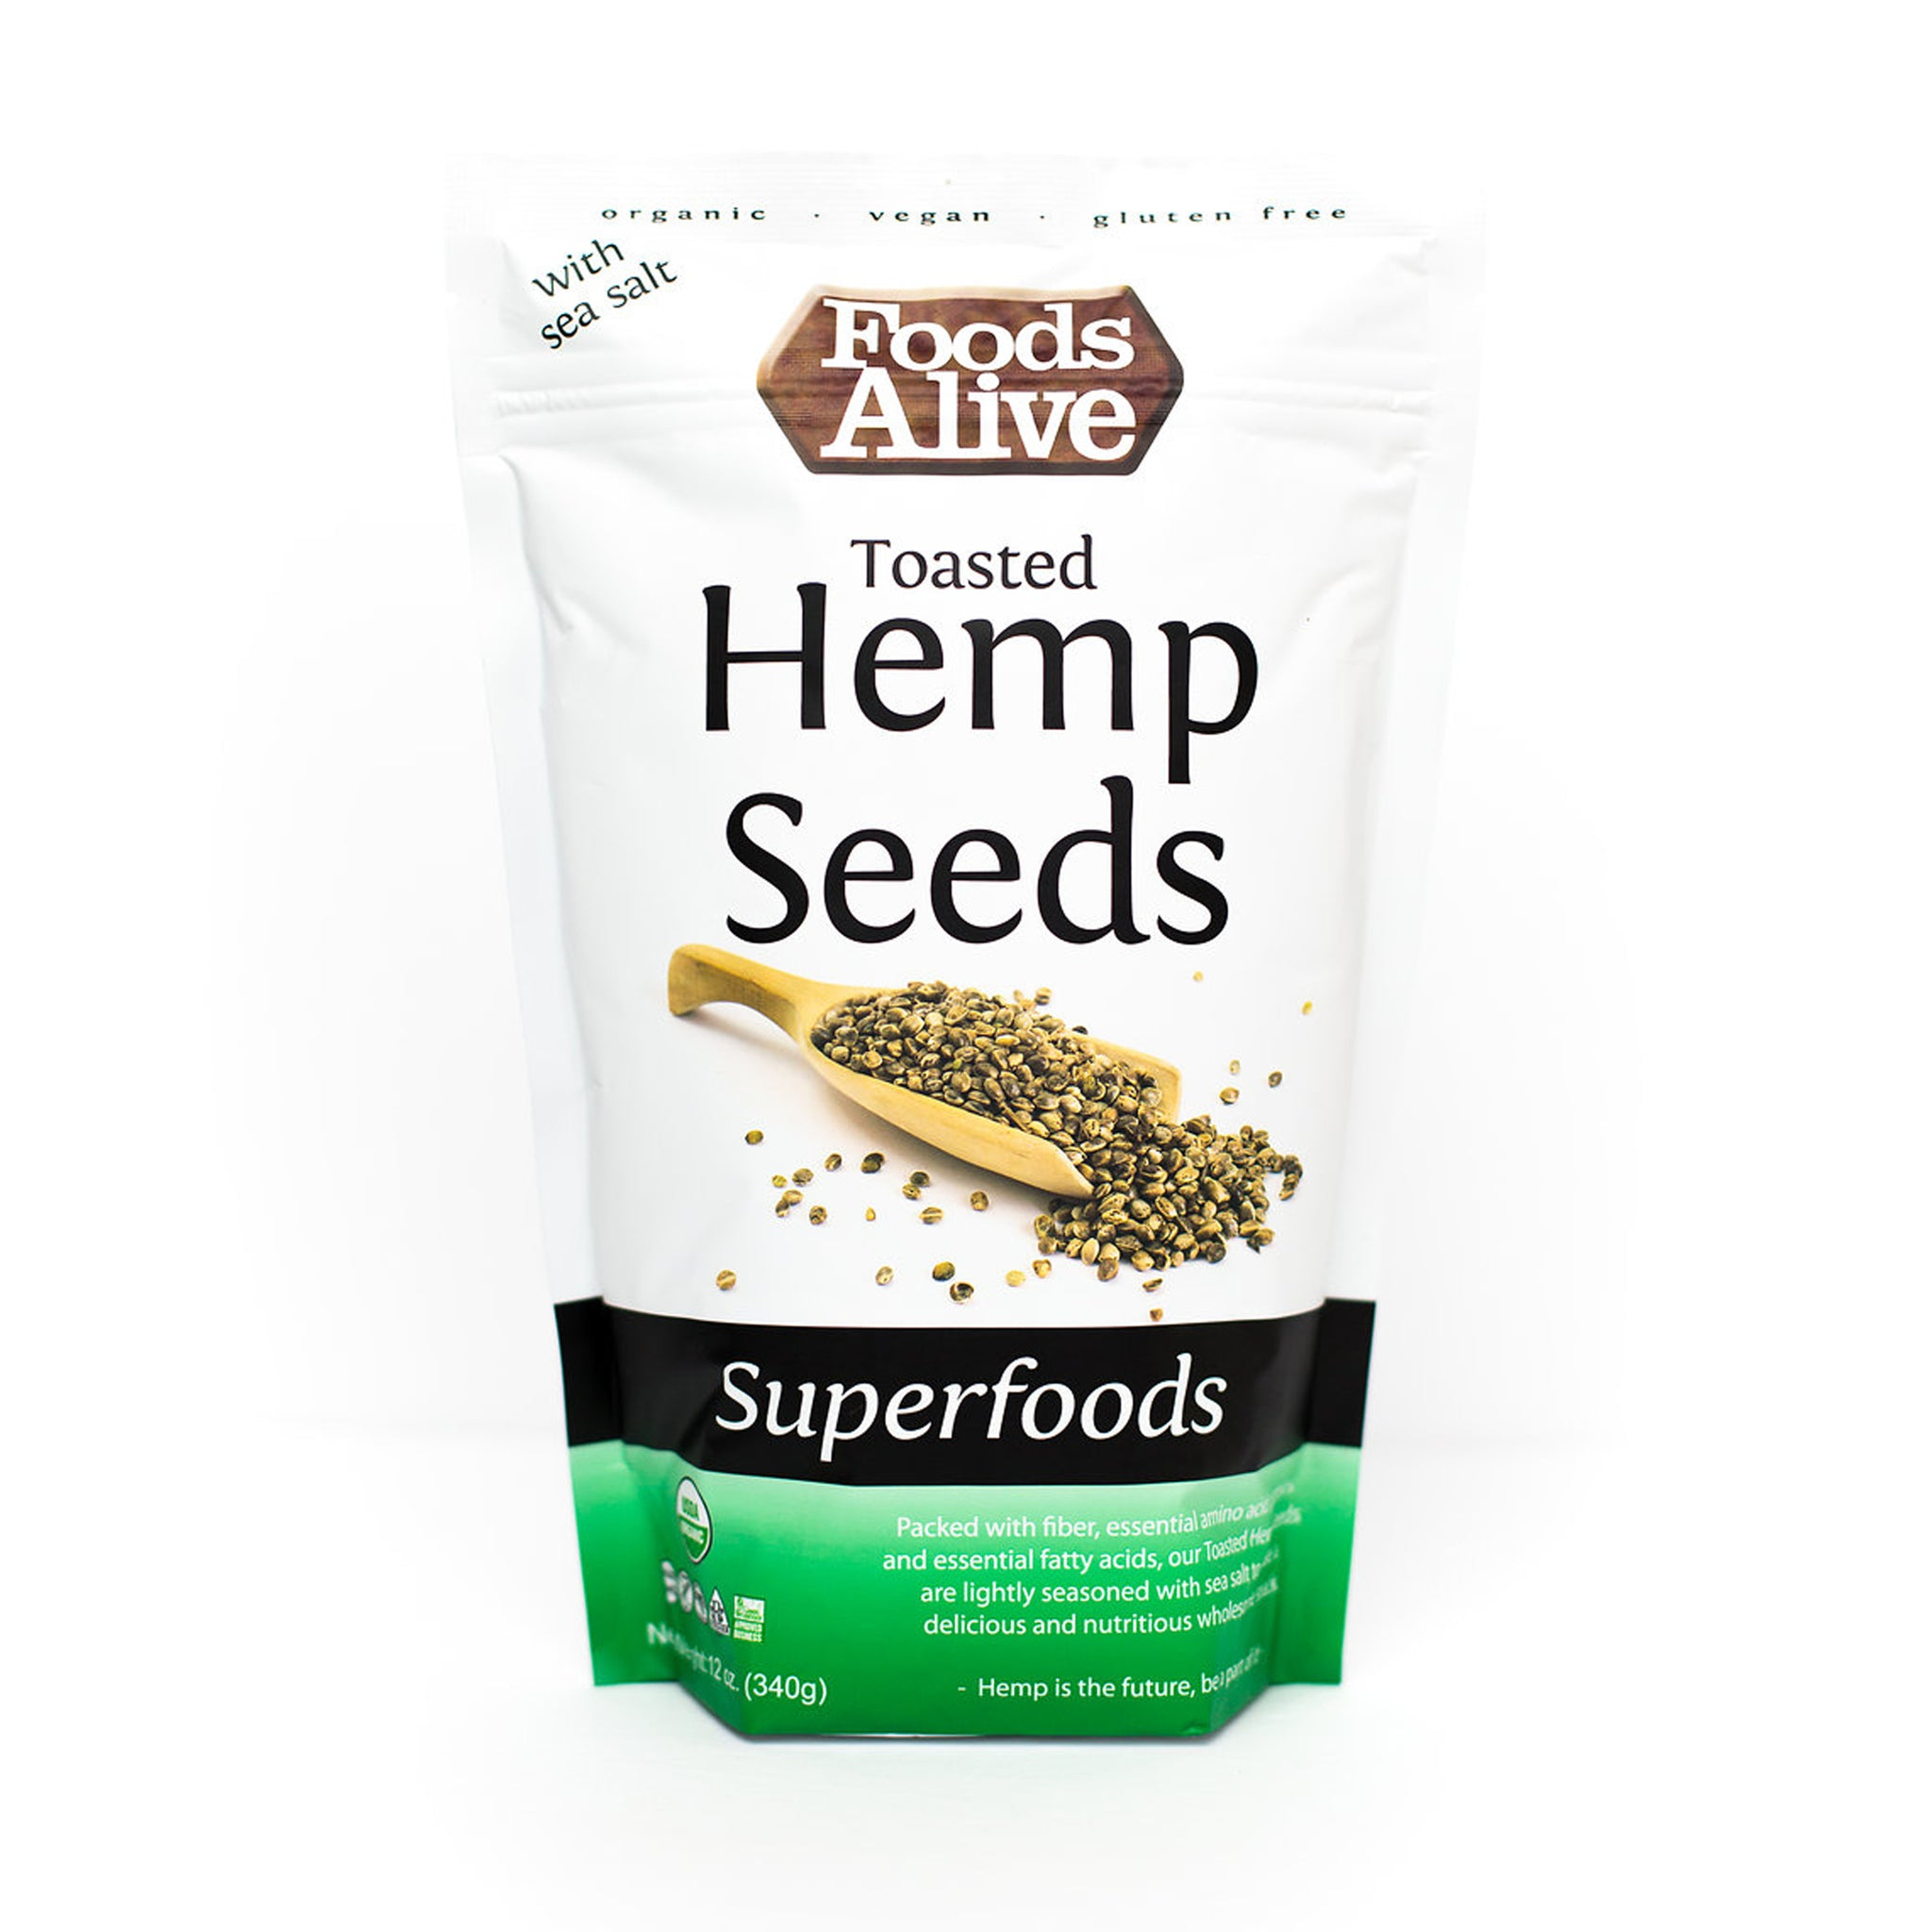 Foods Alive - Organic Toasted Hemp Seeds - 12 oz - Front